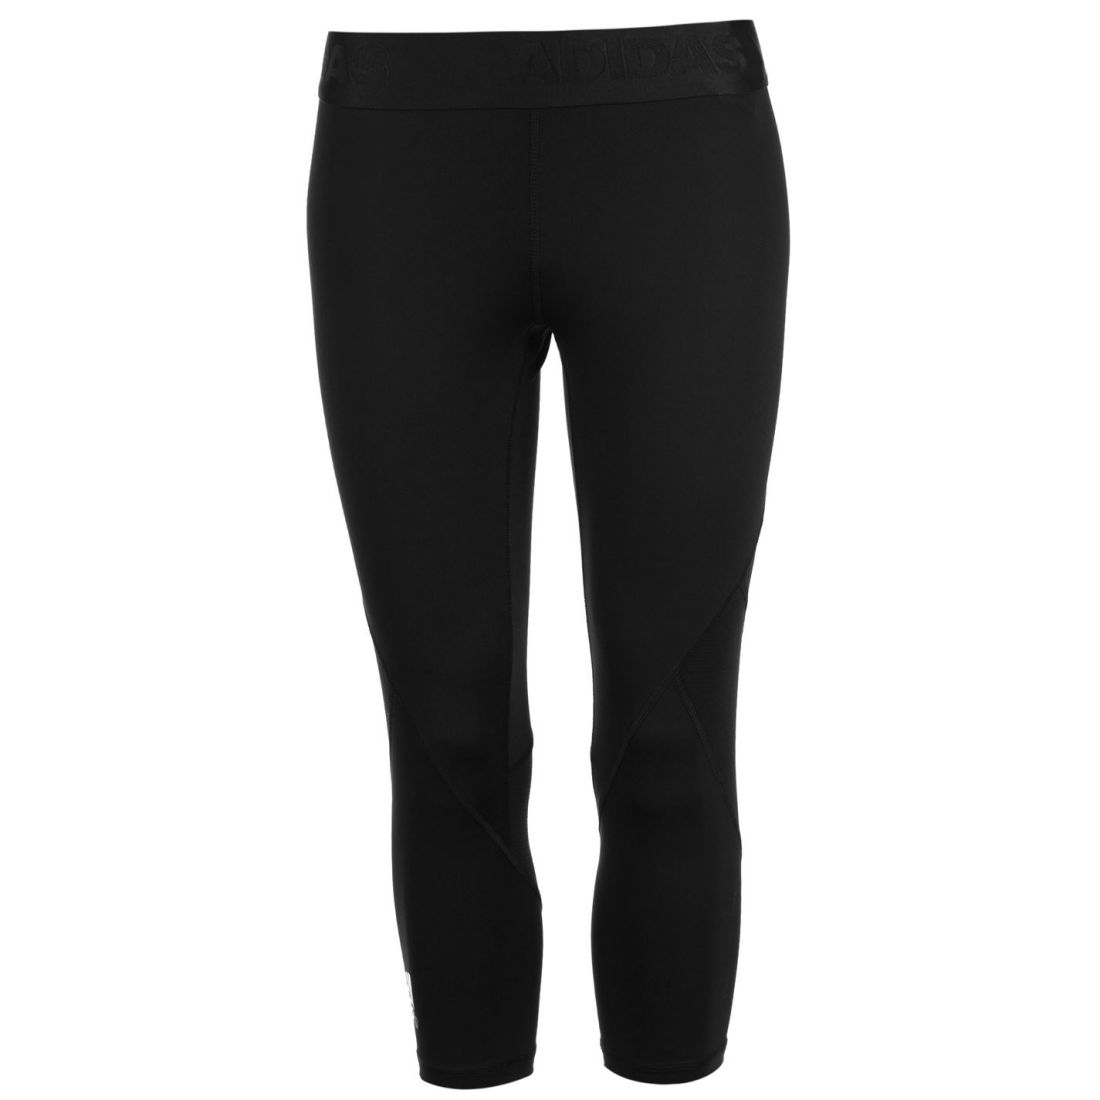 0cc8d7dea8730 adidas Womens Alphaskin Sport Three Quarter Tights Capris Pants Trousers  Bottoms